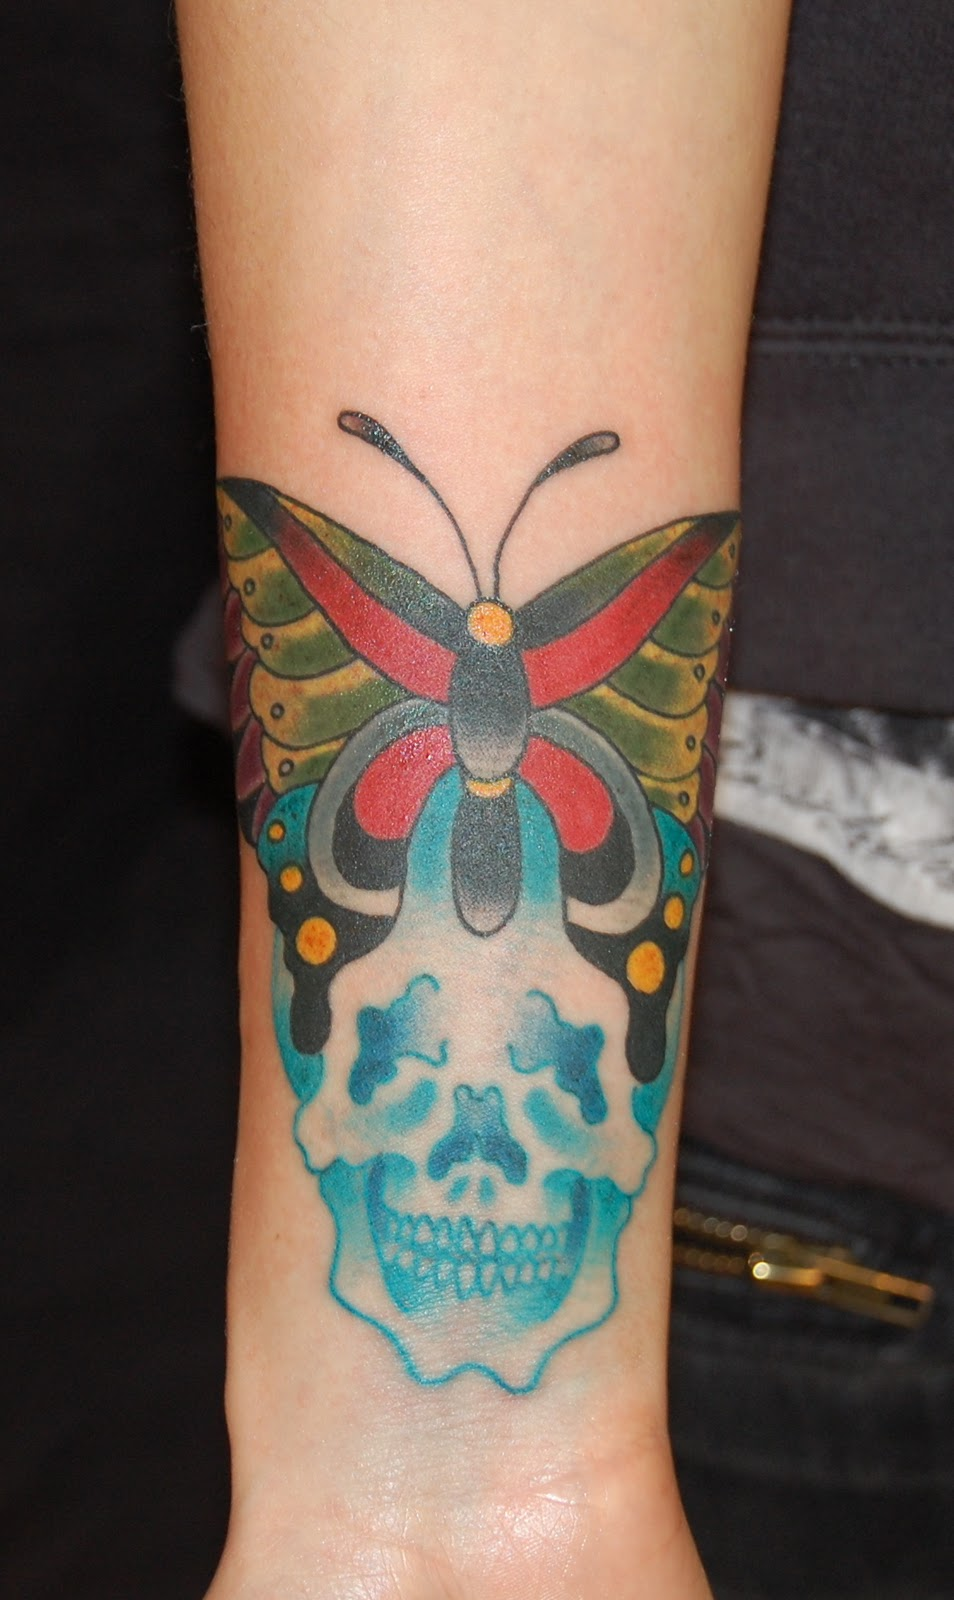 Jeb maykut flyrite tattoo a moth and skull tattoo on for Mf doom tattoo